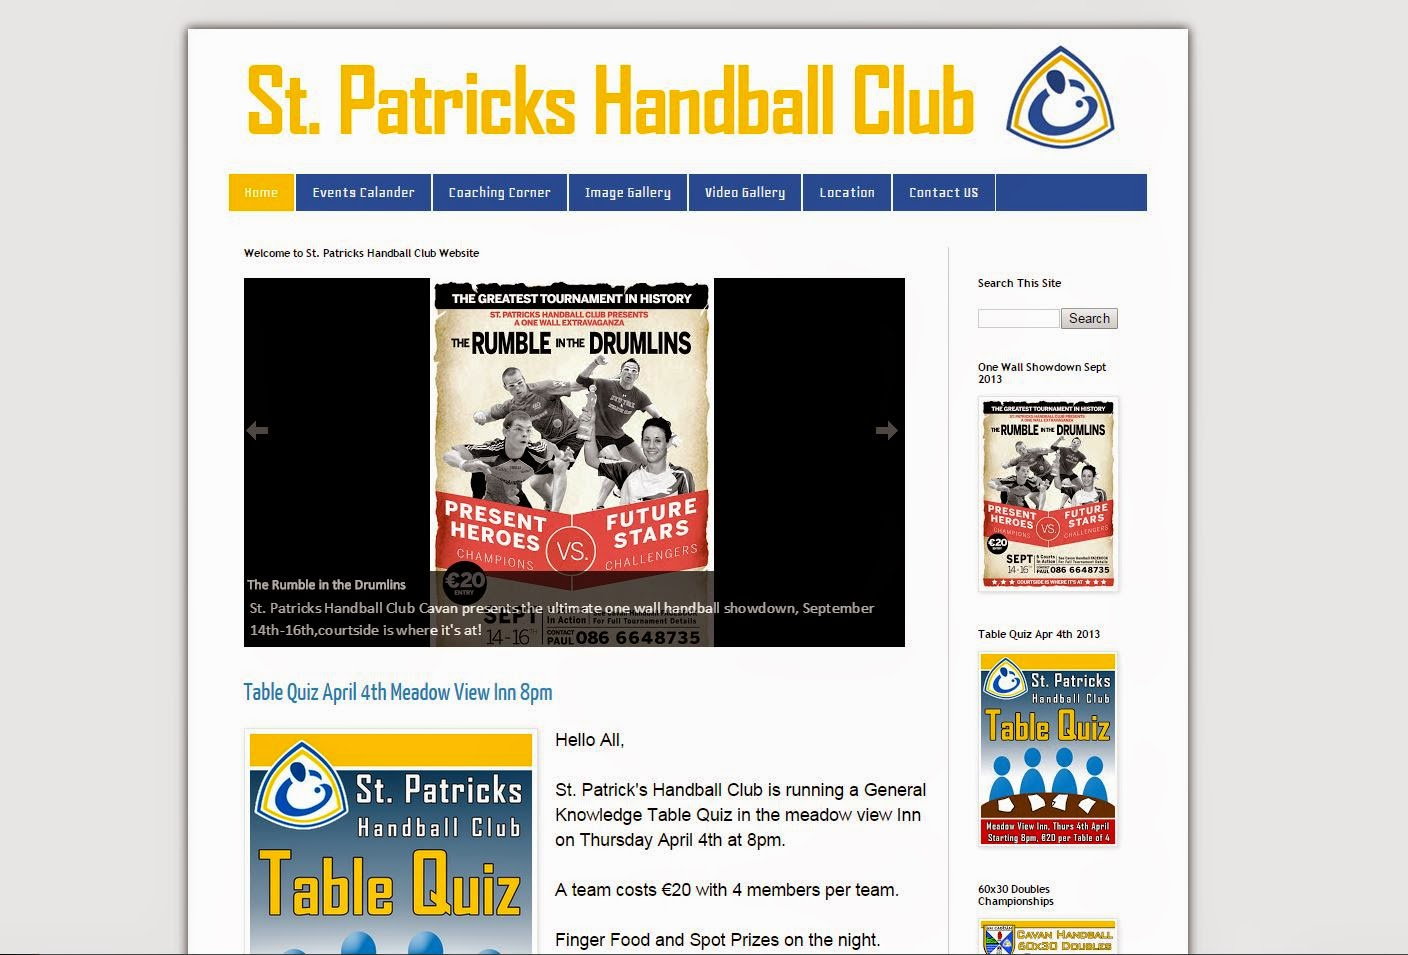 St. Patricks Handball Club Website